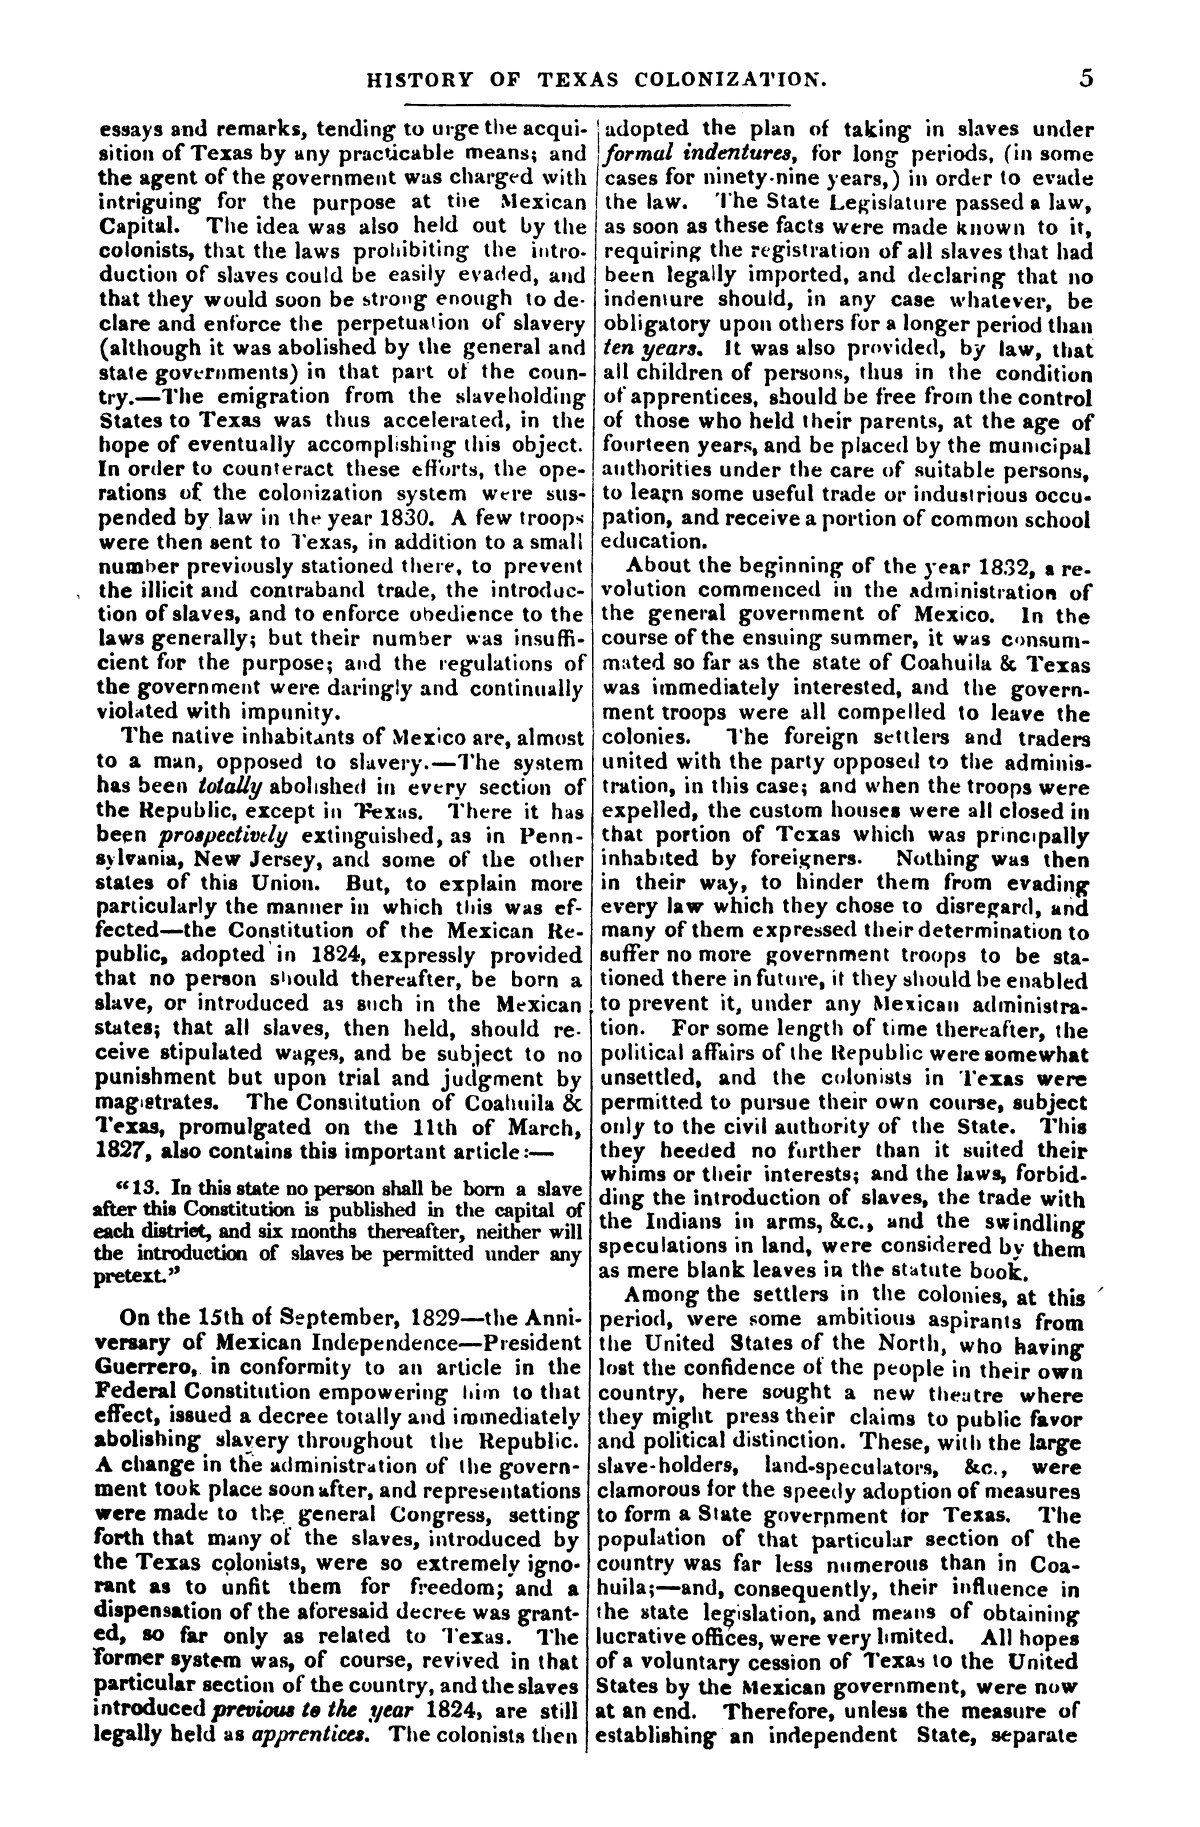 The war in Texas; a review of facts and circumstances, showing that this contest is a crusade against Mexico, set on foot by slaveholders, land speculators, & c. in order to re-establish, extend, and perpetuate the system of slavery and the slave trade.                                                                                                      [Sequence #]: 5 of 64